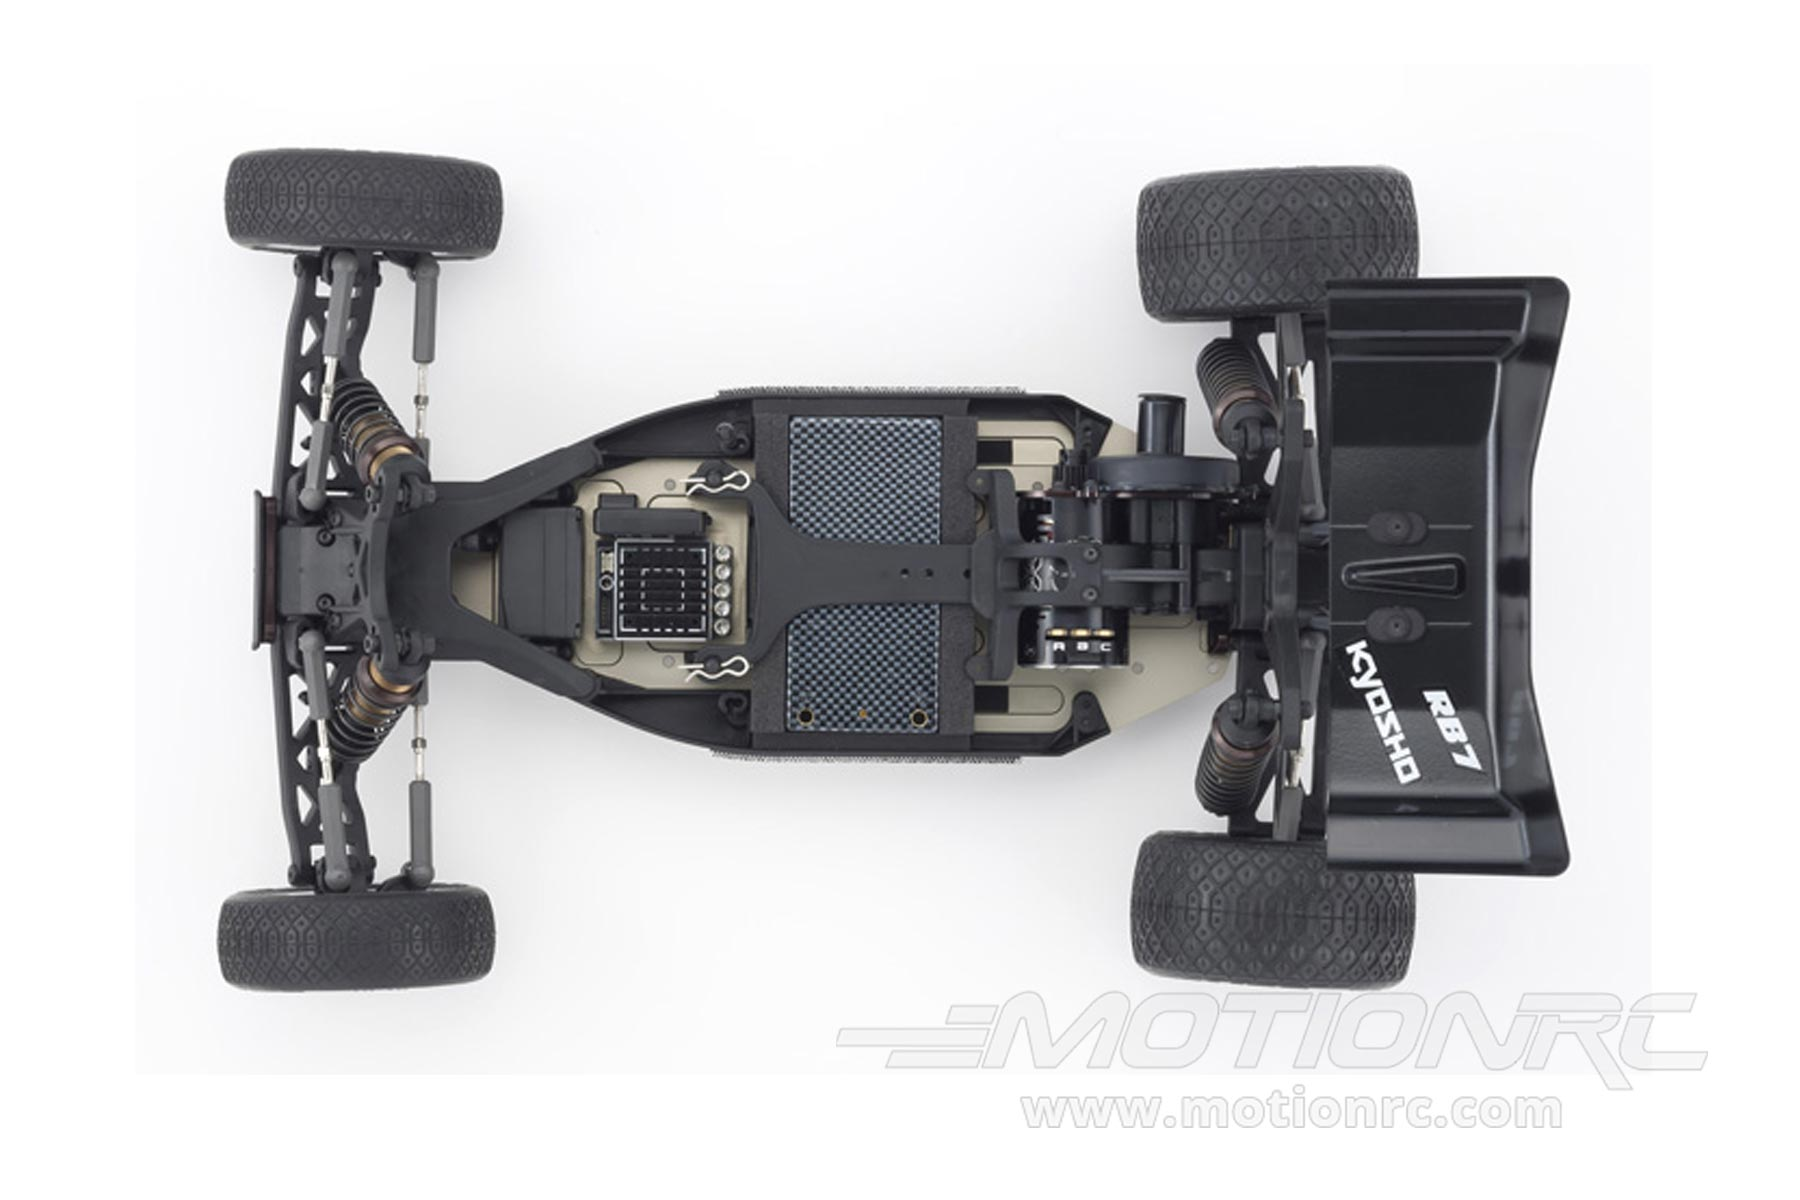 Light-Weight Chassis With Optimal Flex